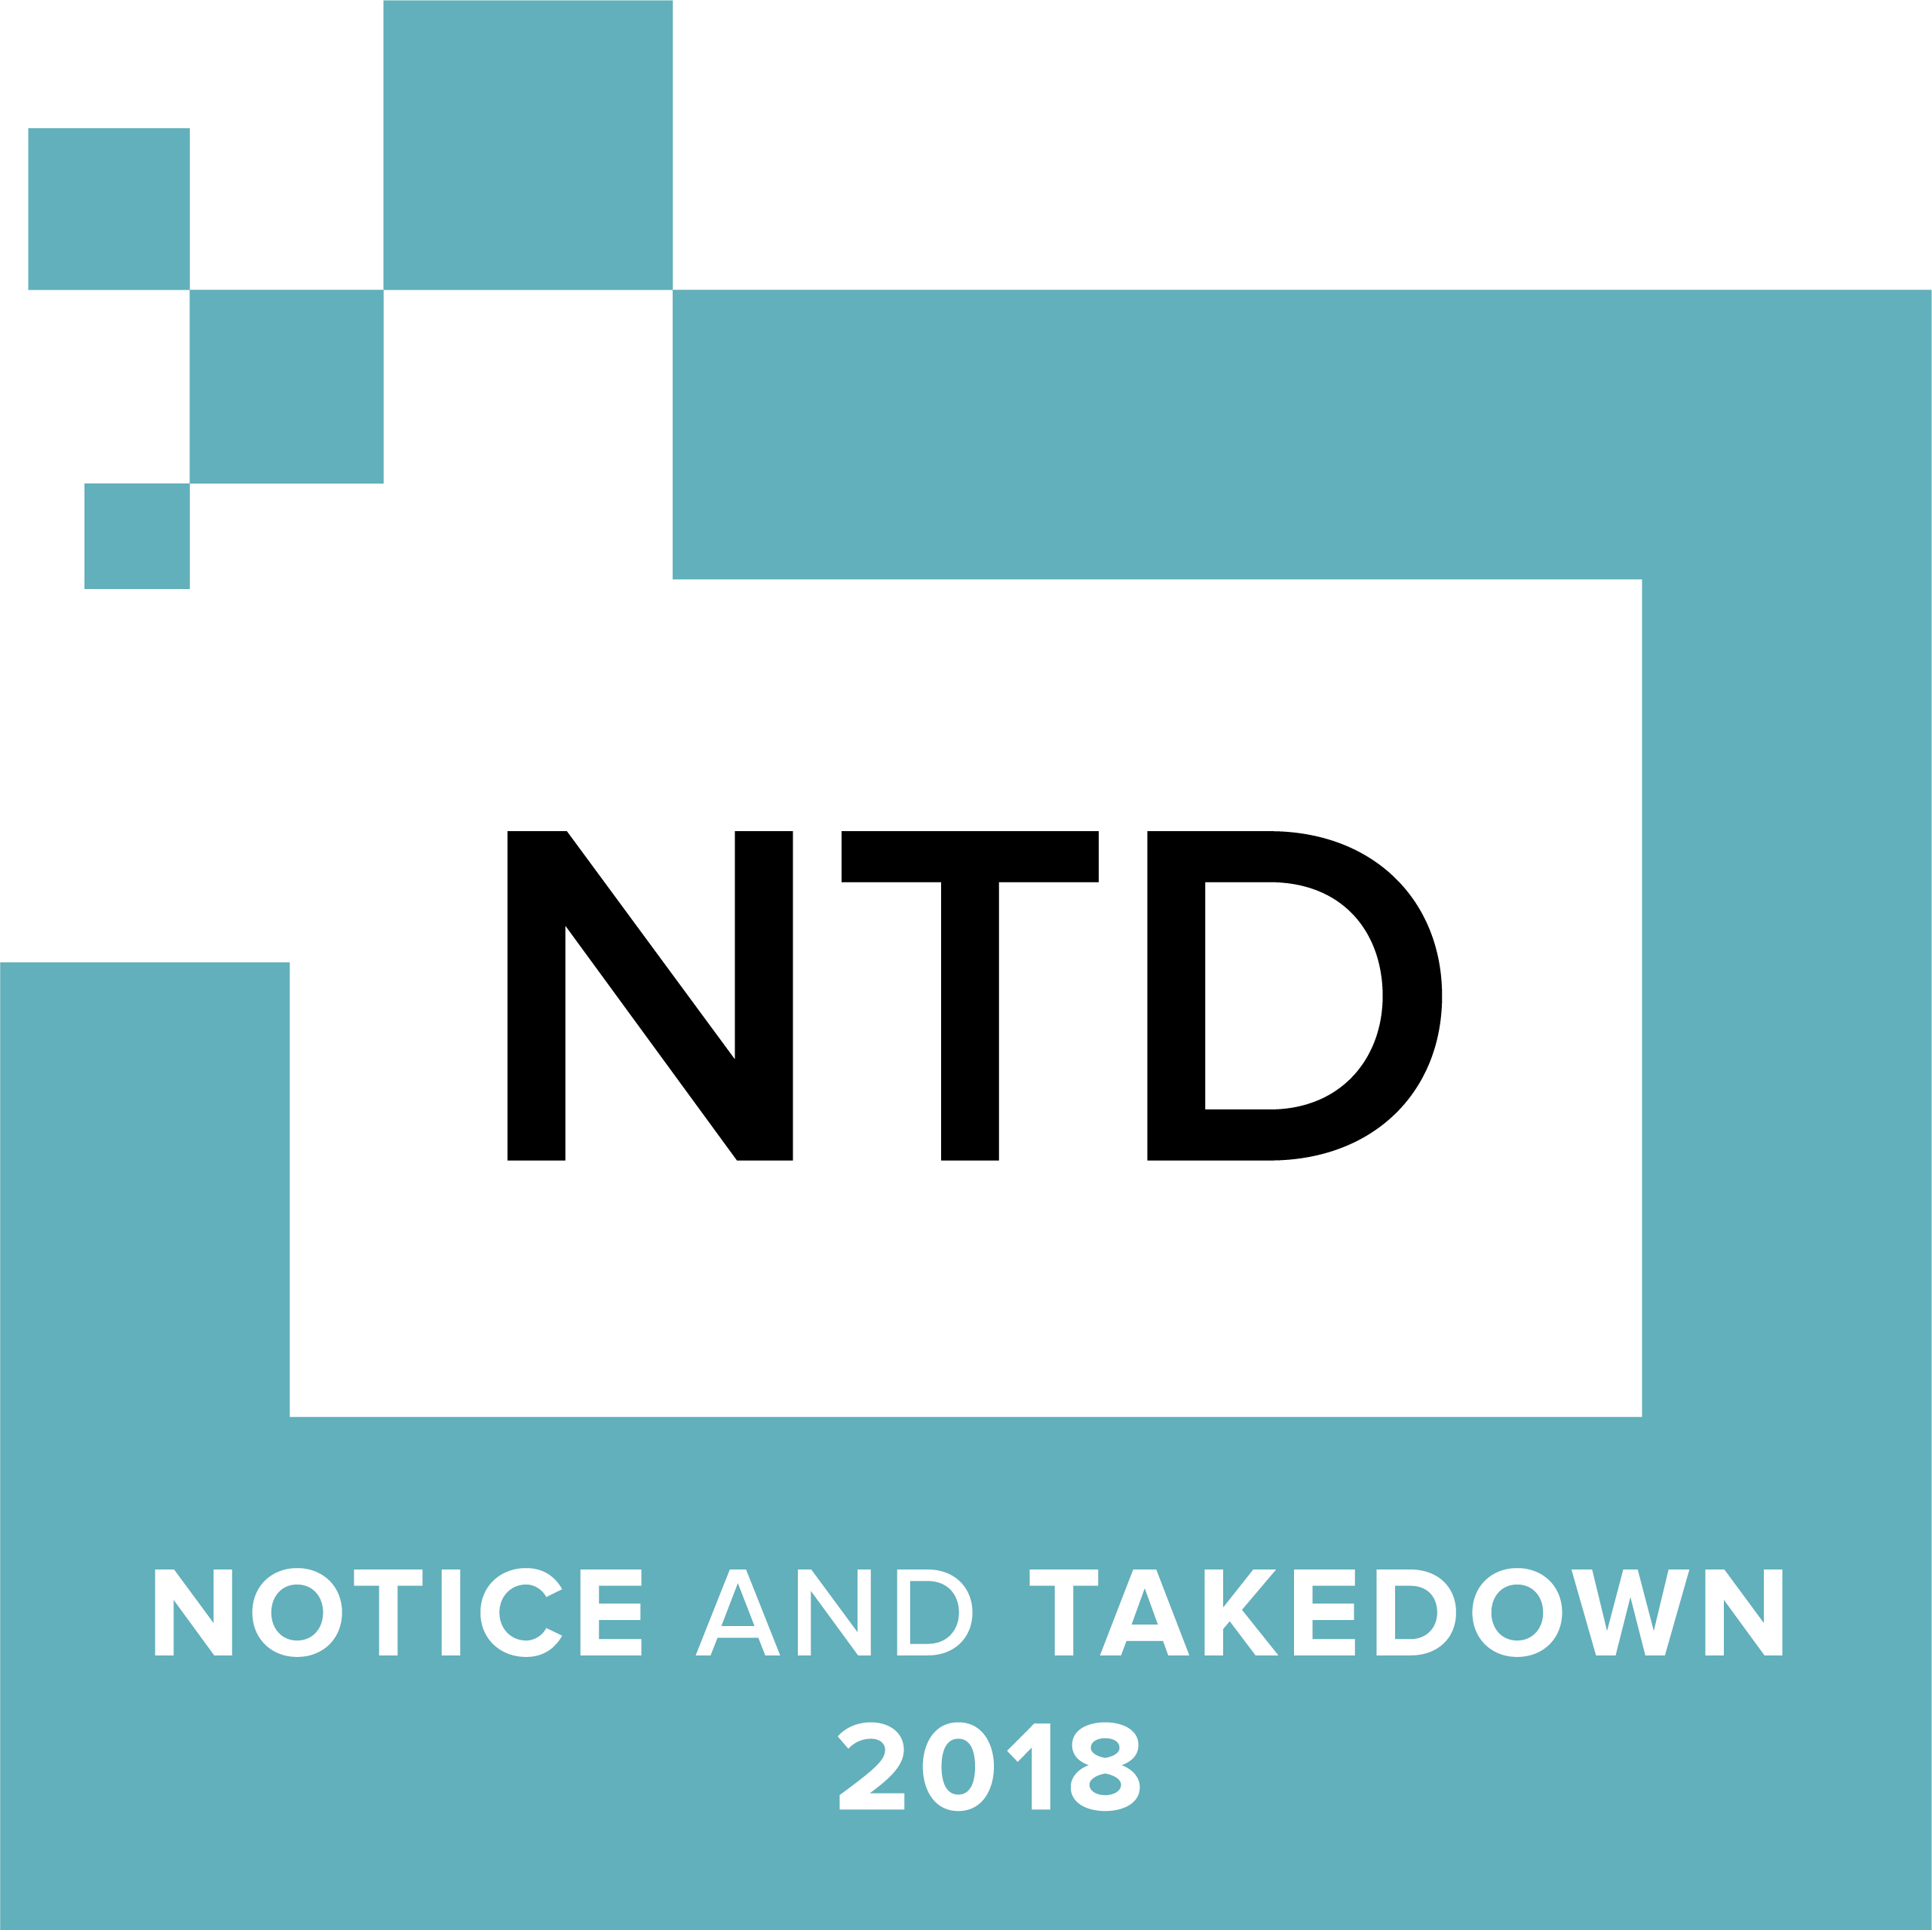 Notice and Takedown